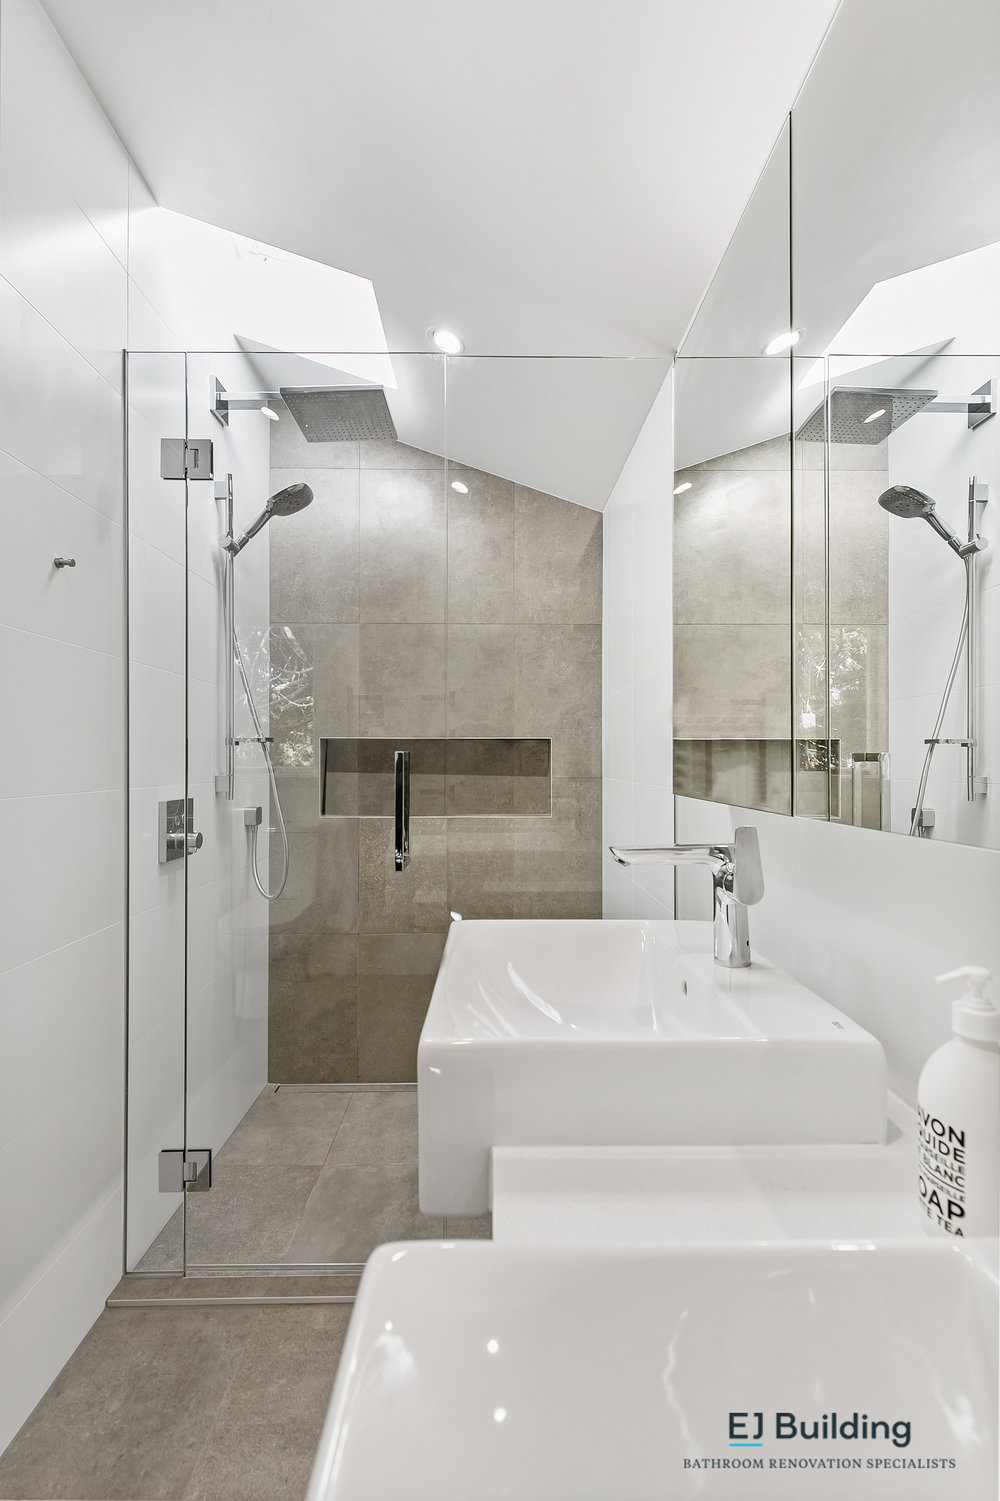 Ellerslie bathroom renovator Auckland. Bathroom renovation ideas with large wall to wall shower and skylight above. Double vanity with matching mirror cabinet . Bathroom Renovation by E J Building Bathroom renovators In Auckland.